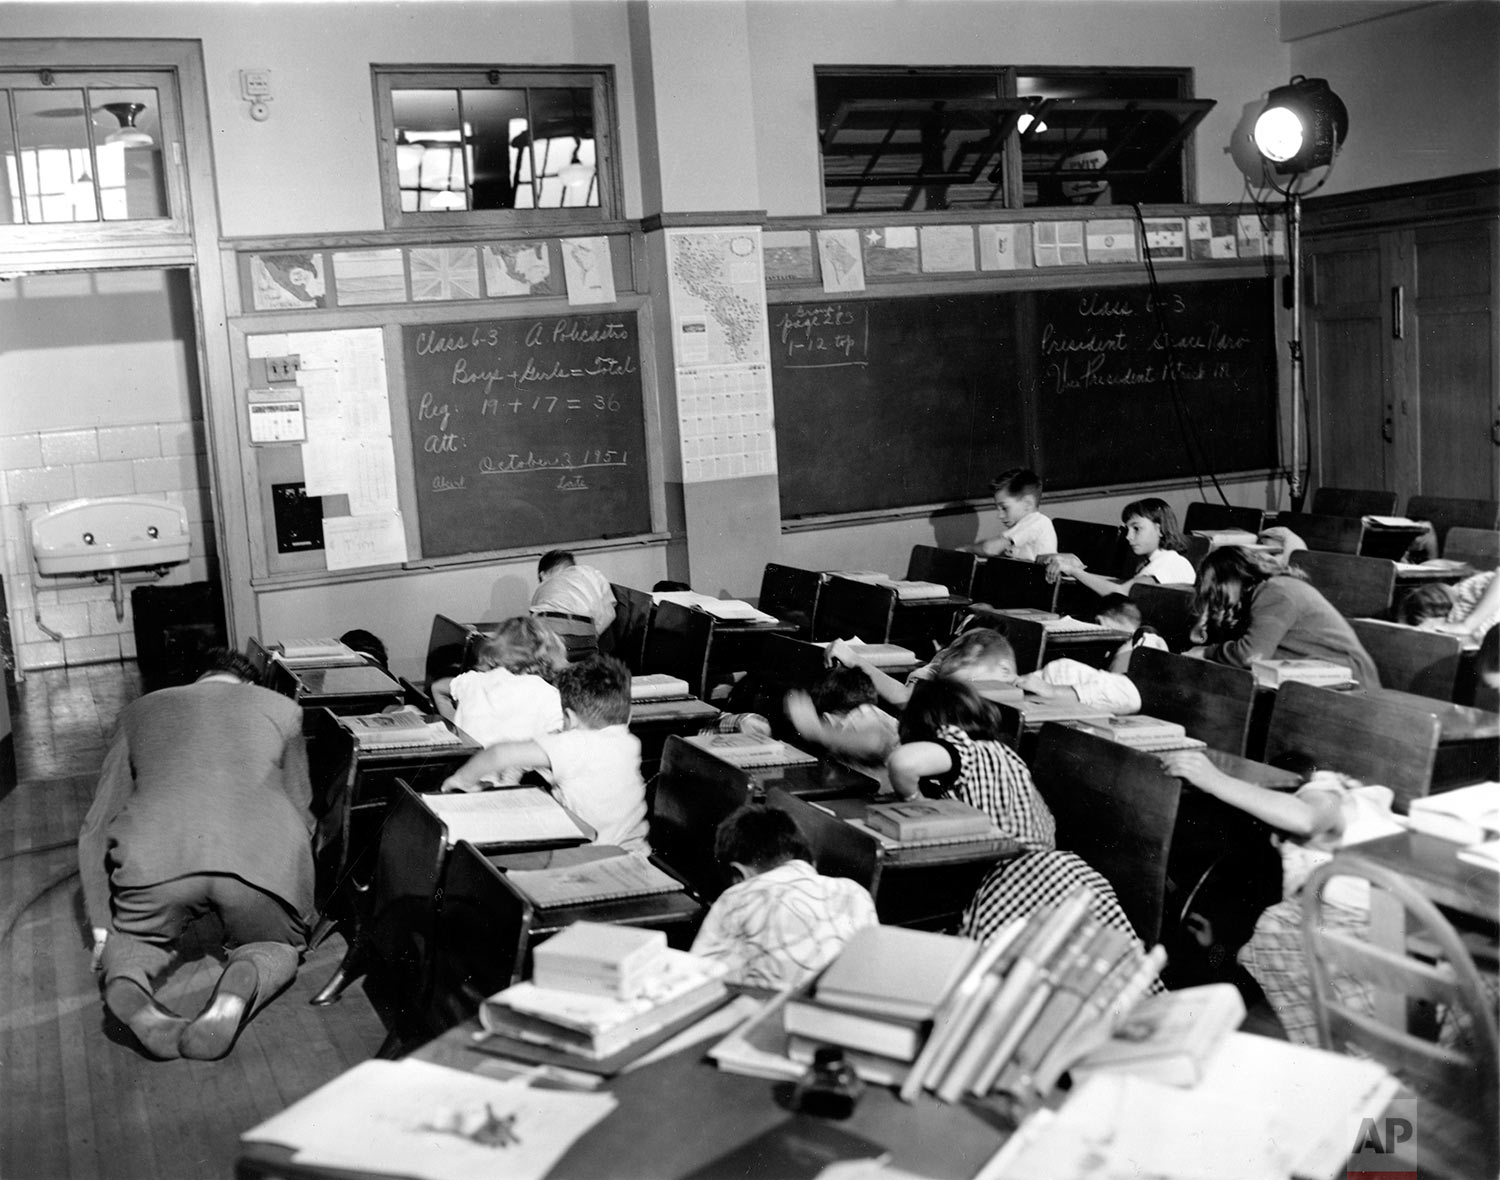 """In this Nov. 21, 1951 picture, sixth grade students crouch under or beside their desks along with their teacher, Vincent M. Bohan, left, as they act out a scene from the Federal Civil Defense administration film """"Duck and Cover"""" at Public School 152 in the Queens borough of New York City. Even before the March 11 earthquake and resulting tsunami that led to the Japanese nuclear crisis, Americans were bombarded with contradictory images and messages that frighten even when they try to reassure. It started with the awesome and deadly mushroom cloud rising from the atomic bomb, which led to fallout shelters and school duck-and-cover drills. (AP Photo/Dan Grossi)"""